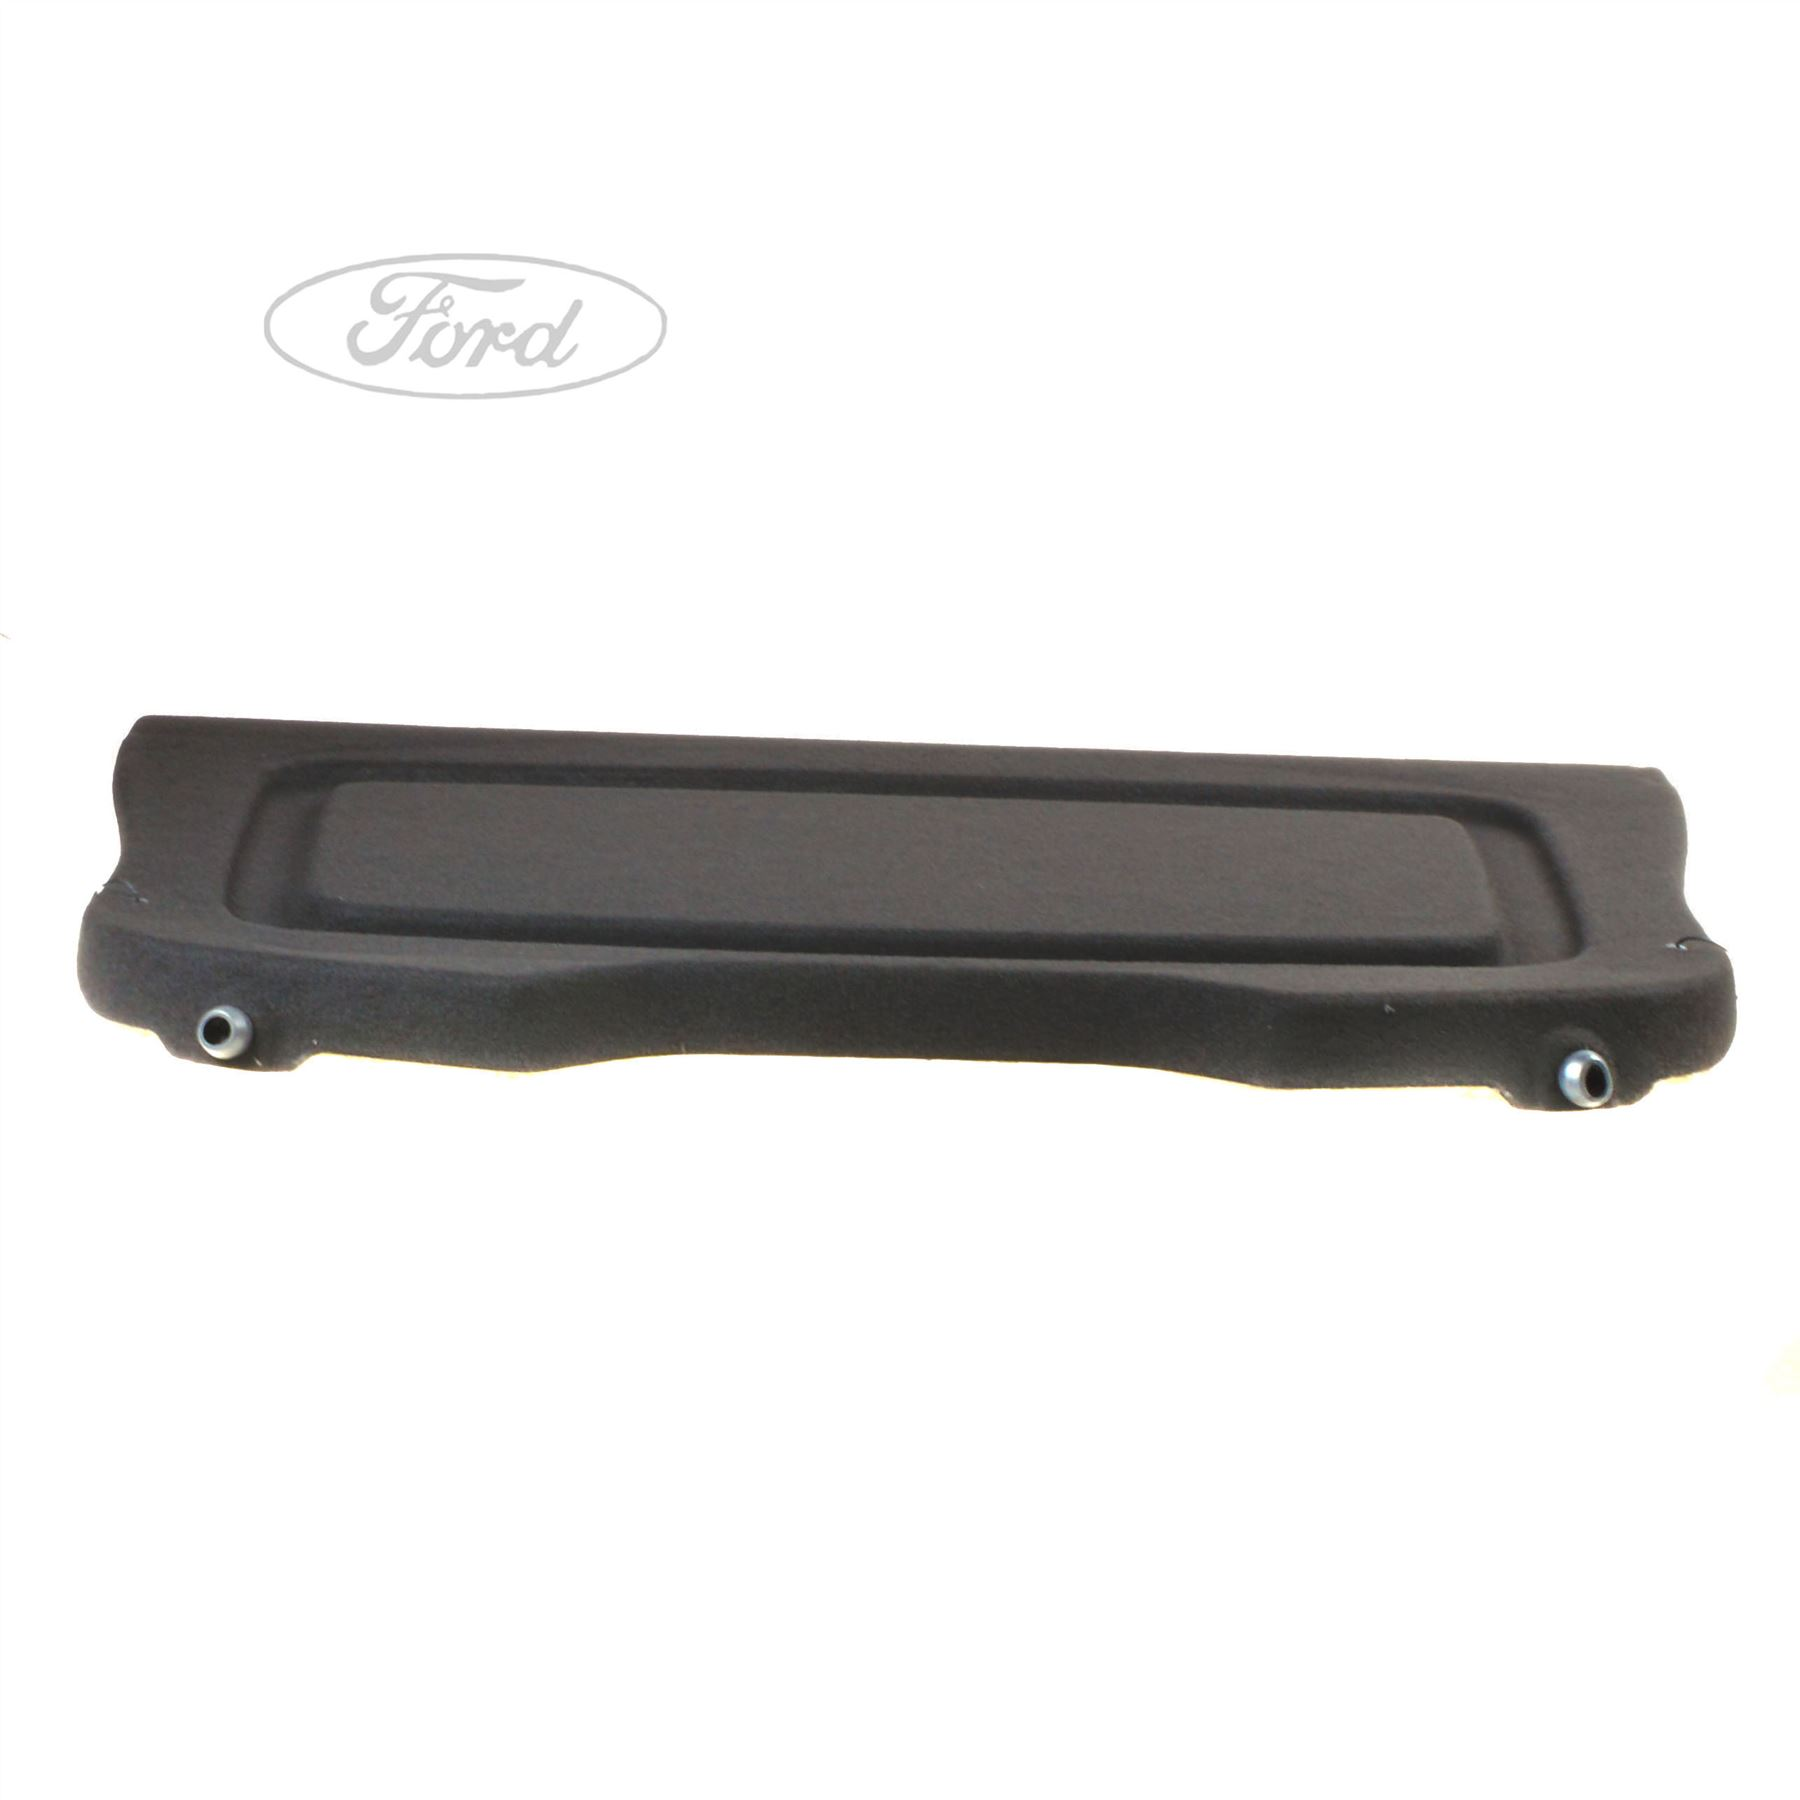 Genuine Ford Focus Mk3 Rear Parcel Shelf Package Tray Load Cover 2012 Fuse Box